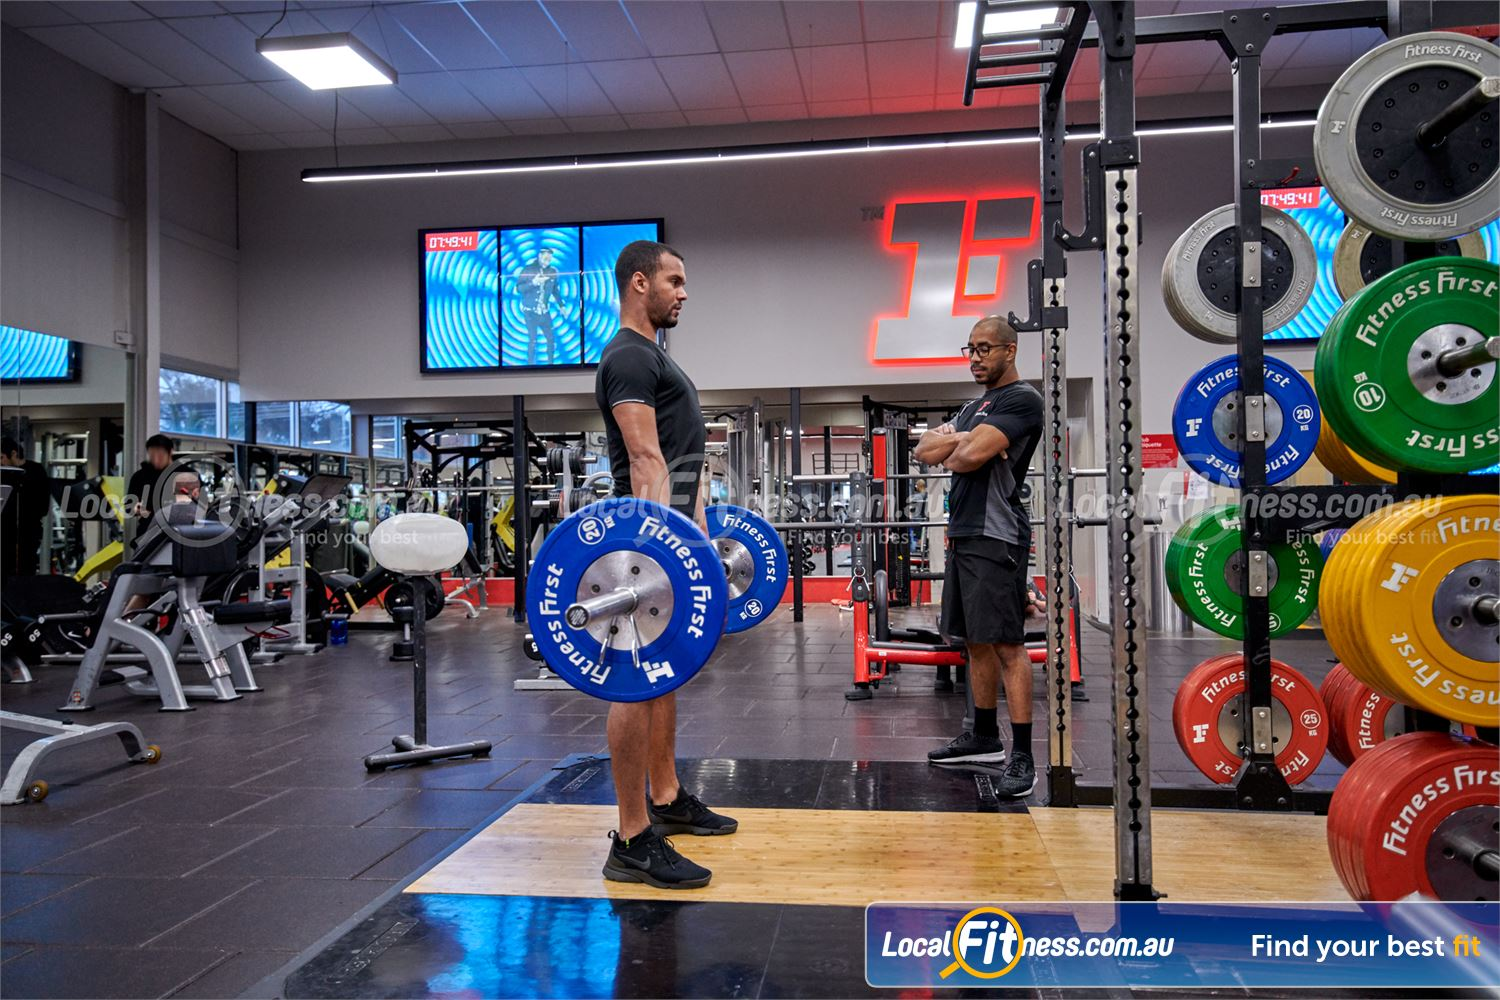 Fitness First Parramatta Fitness First Parramatta gym is fully equipped for all your training needs.